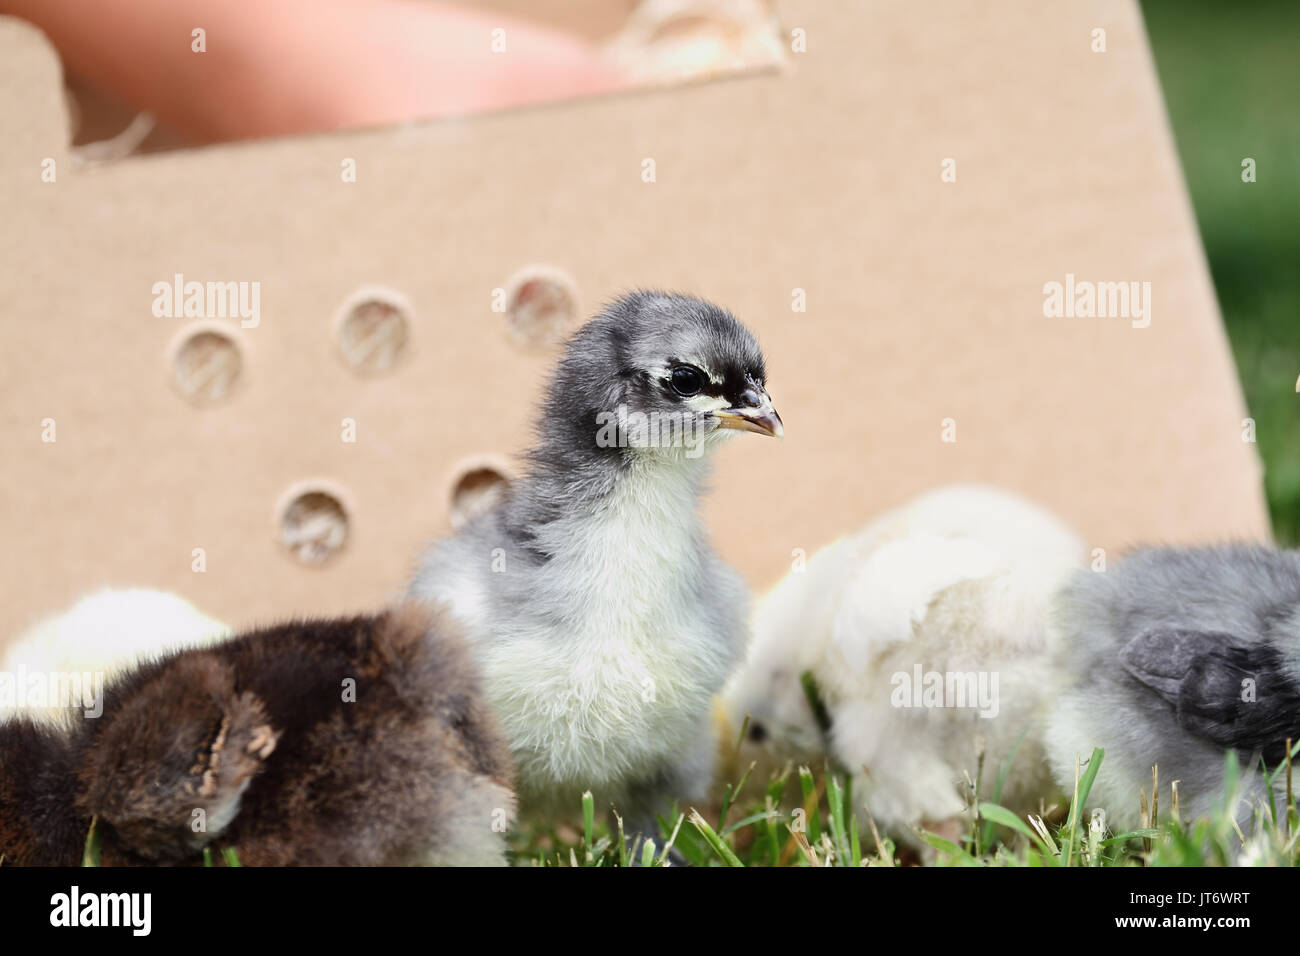 Mail ordered baby Blue Cochin chick beside a packing box. Extreme depth of field with selective focus on the little chick in foreground. - Stock Image